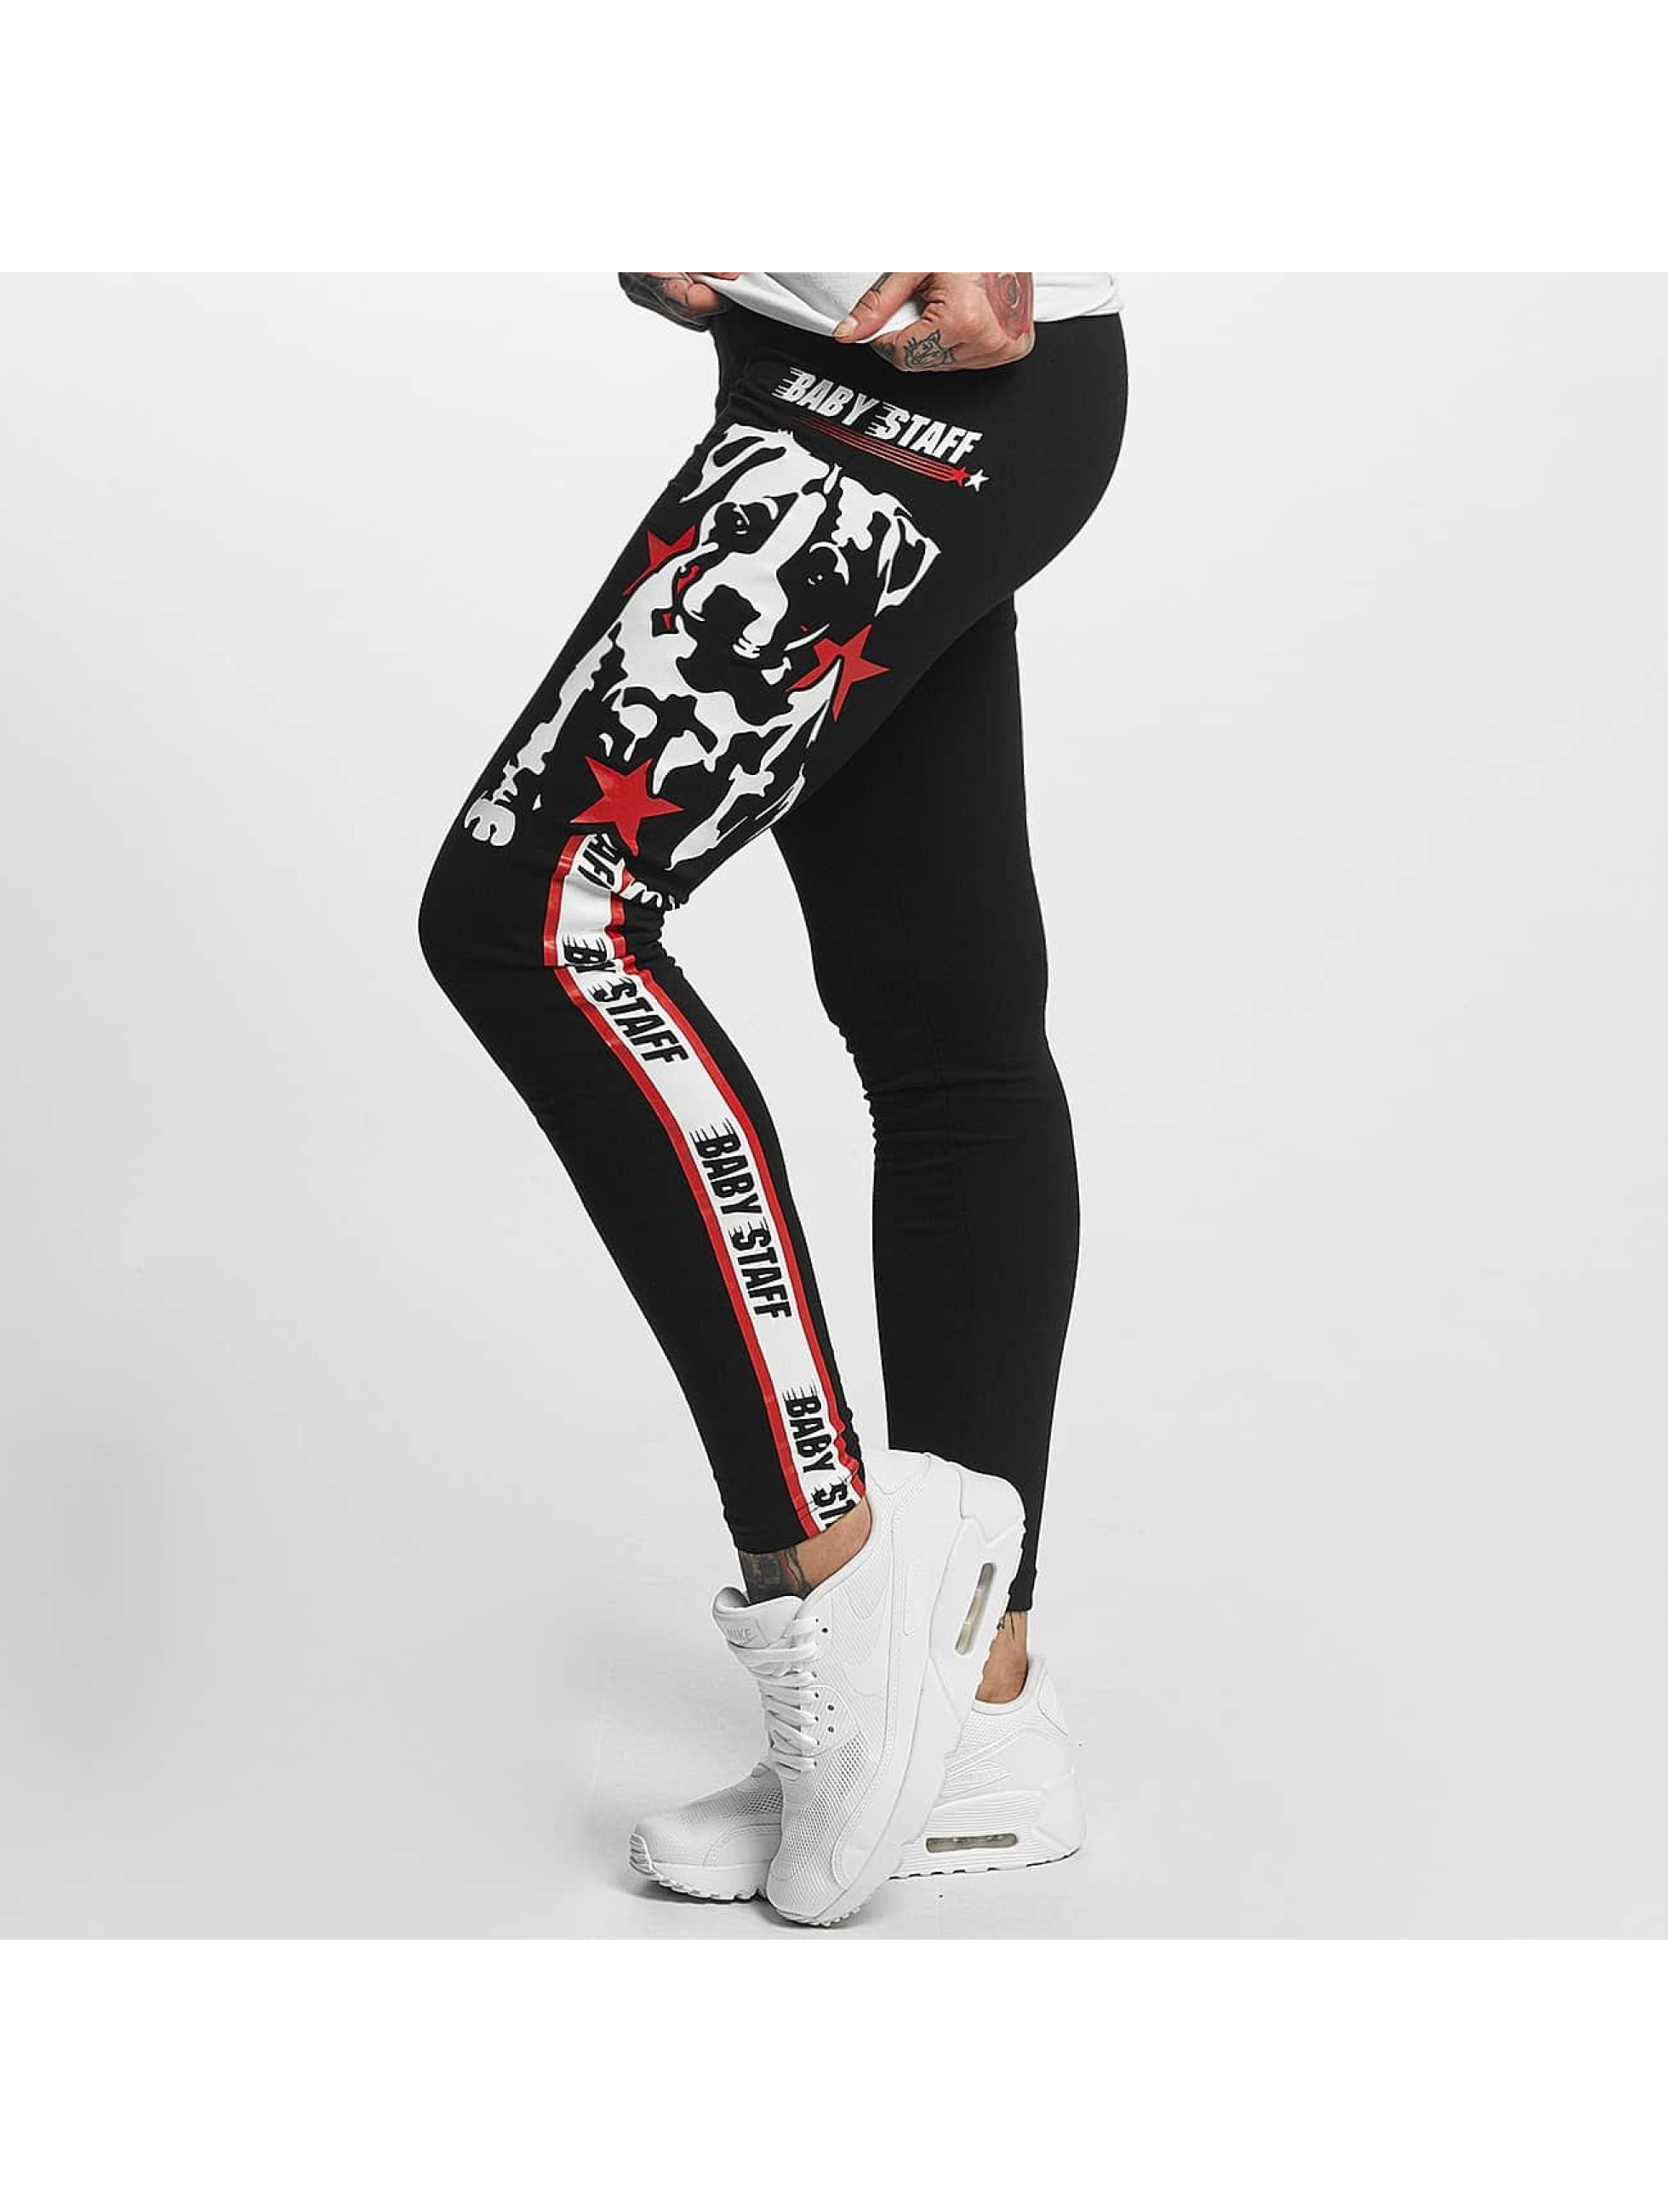 Babystaff Leggings/Treggings Weloo czarny